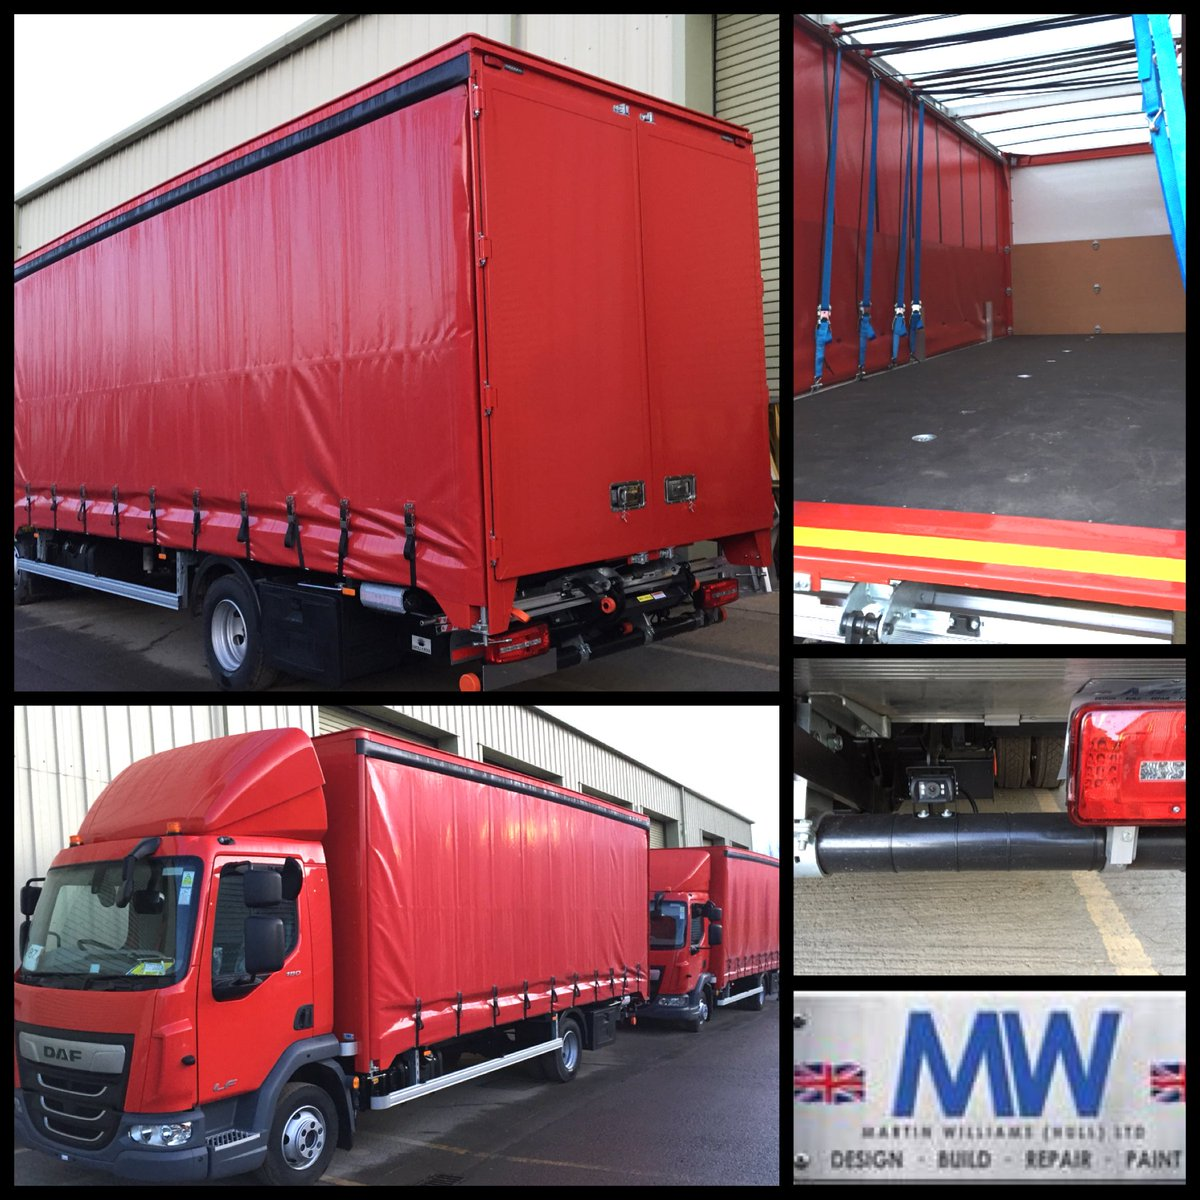 test Twitter Media - 7.5t DAF LF180 Curtain side with Dhollandia 1t Tuck Away Tail Lifts, Bungee load restraint strap system, Axtec onboard vehicle weighing systems, Smuk 4 camera recording system with left turn warning and white noise reverse alarm.   With thanks to @WolseleyUK  and @LancashireDaf https://t.co/J8zE5RI9tj